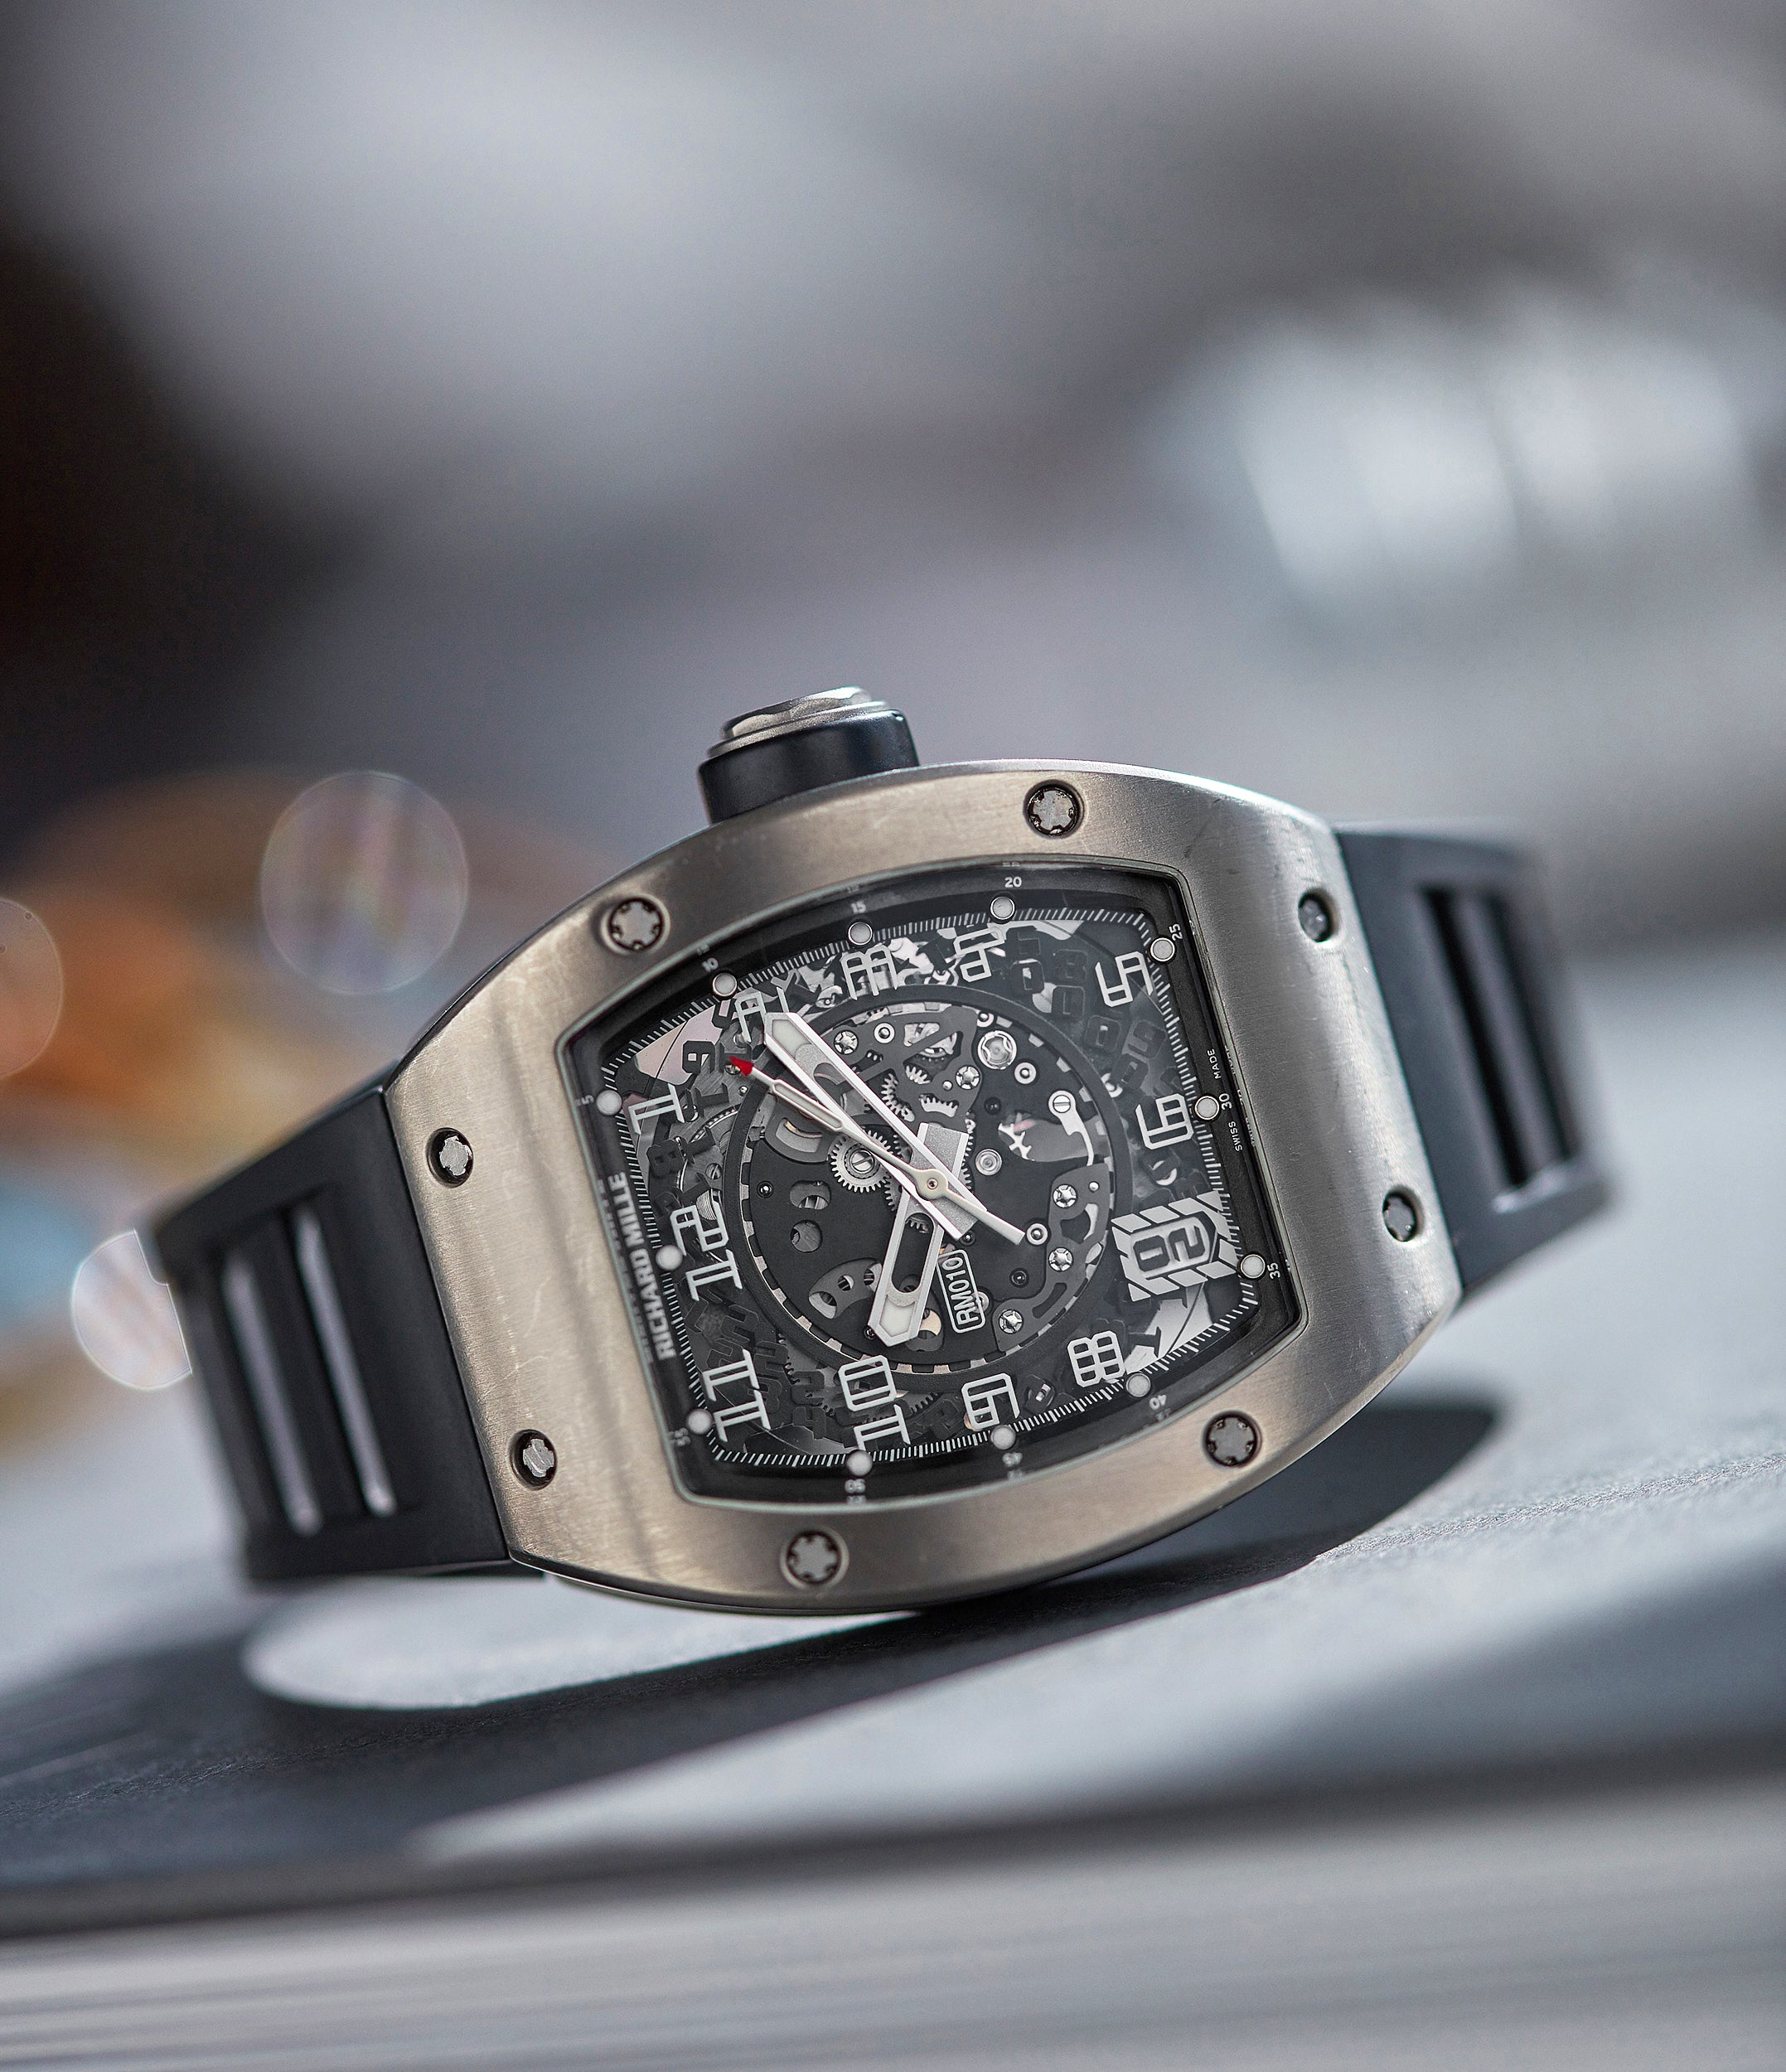 pre-owned rare Richard Mille RM 010TI titanium wristwatch for sale online A Collected Man London UK specialist rare independent watchmakers